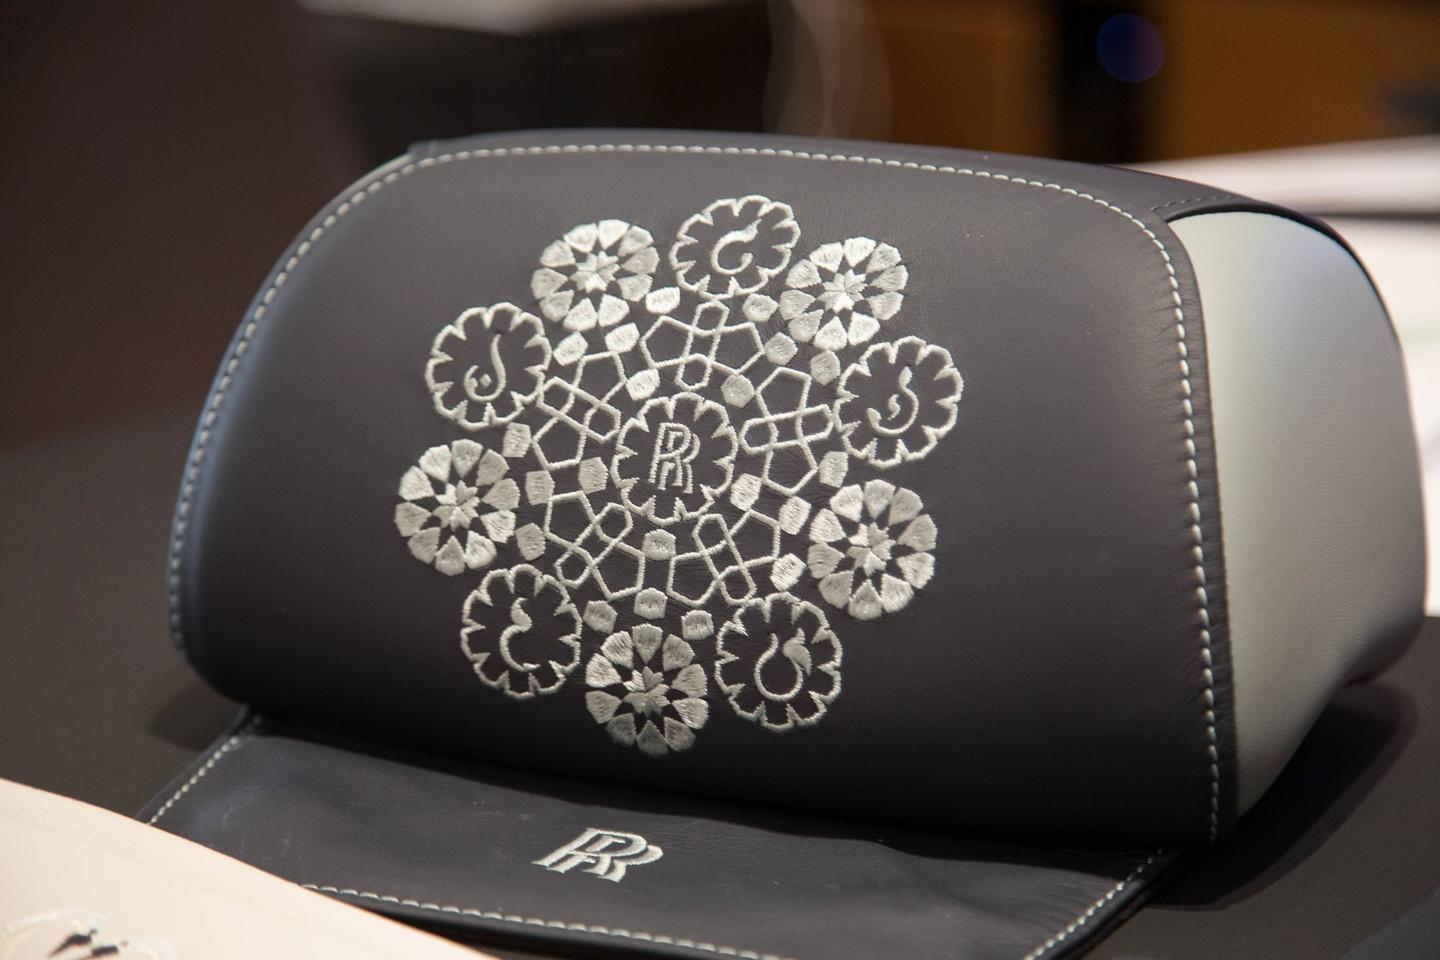 A look at the possibilities with stitching on Rolls-Royce headrests